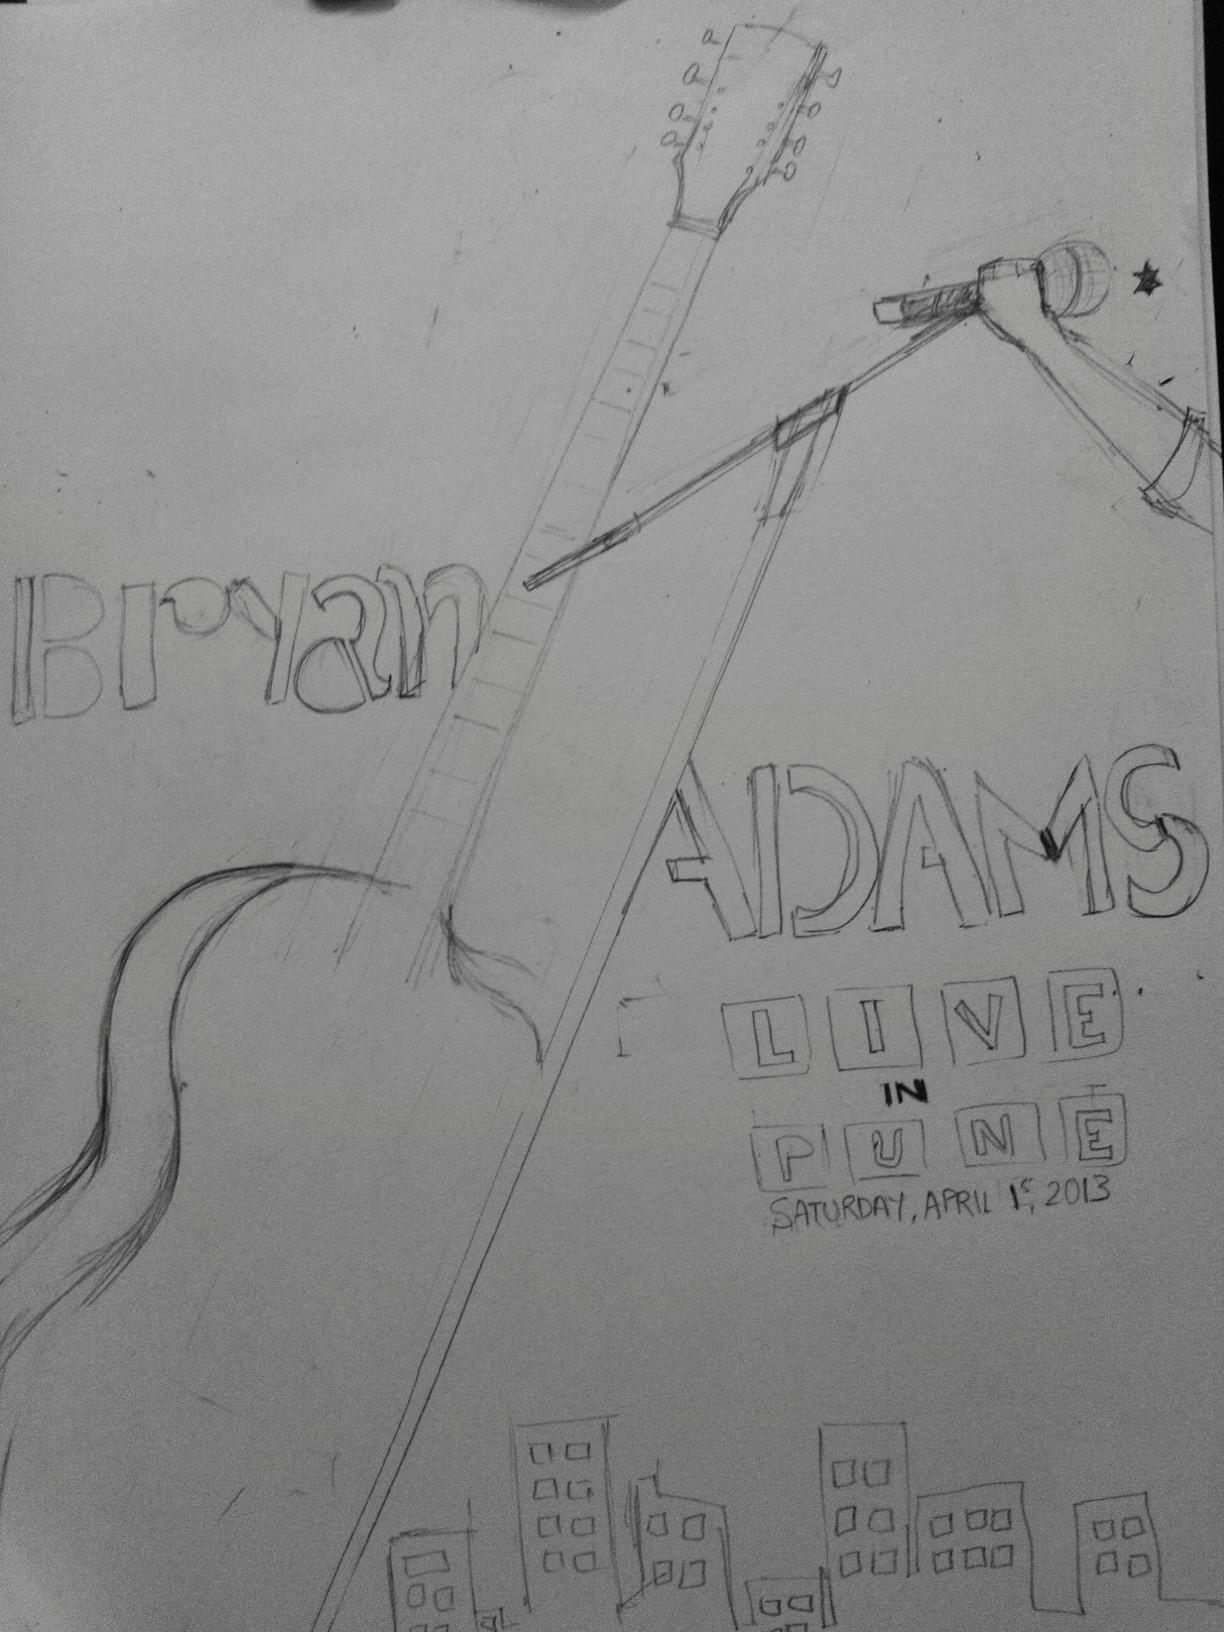 BRYAN ADAMS in India APR '13 - image 5 - student project